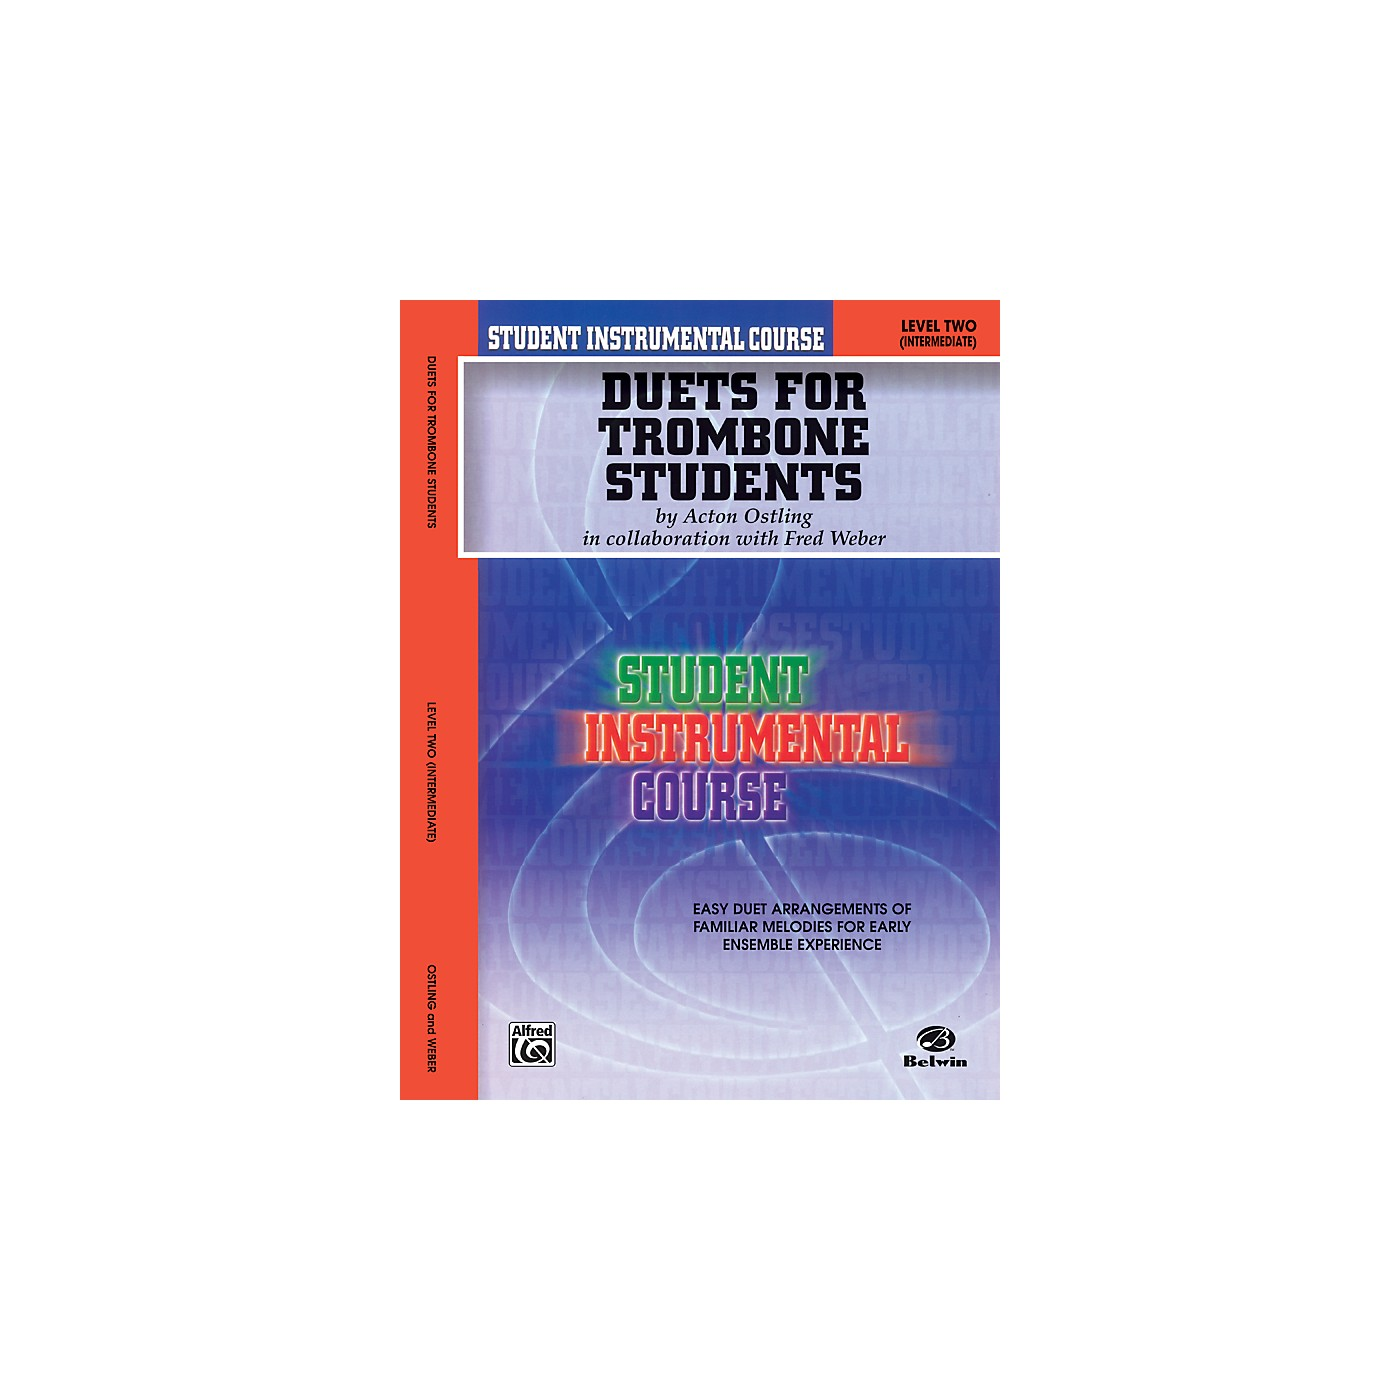 Alfred Student Instrumental Course Duets for Trombone Students Level 2 Book thumbnail